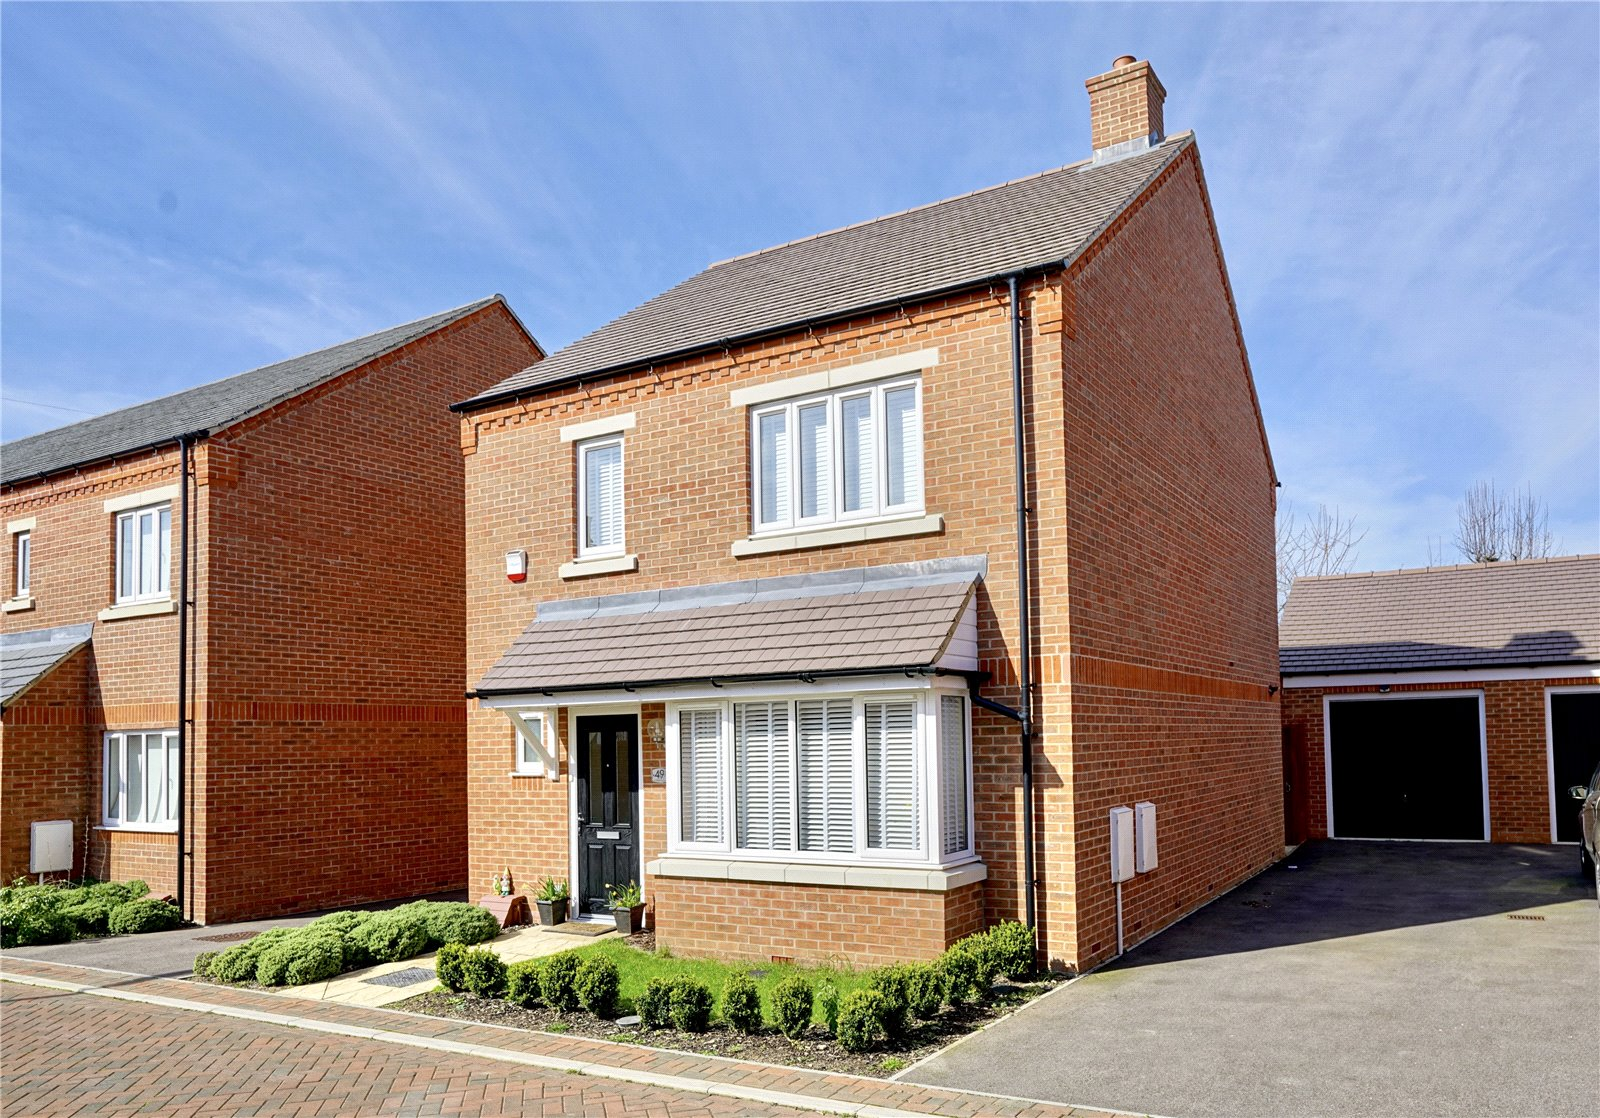 4 bed house for sale in Whinfell Close, Eaton Socon  - Property Image 13